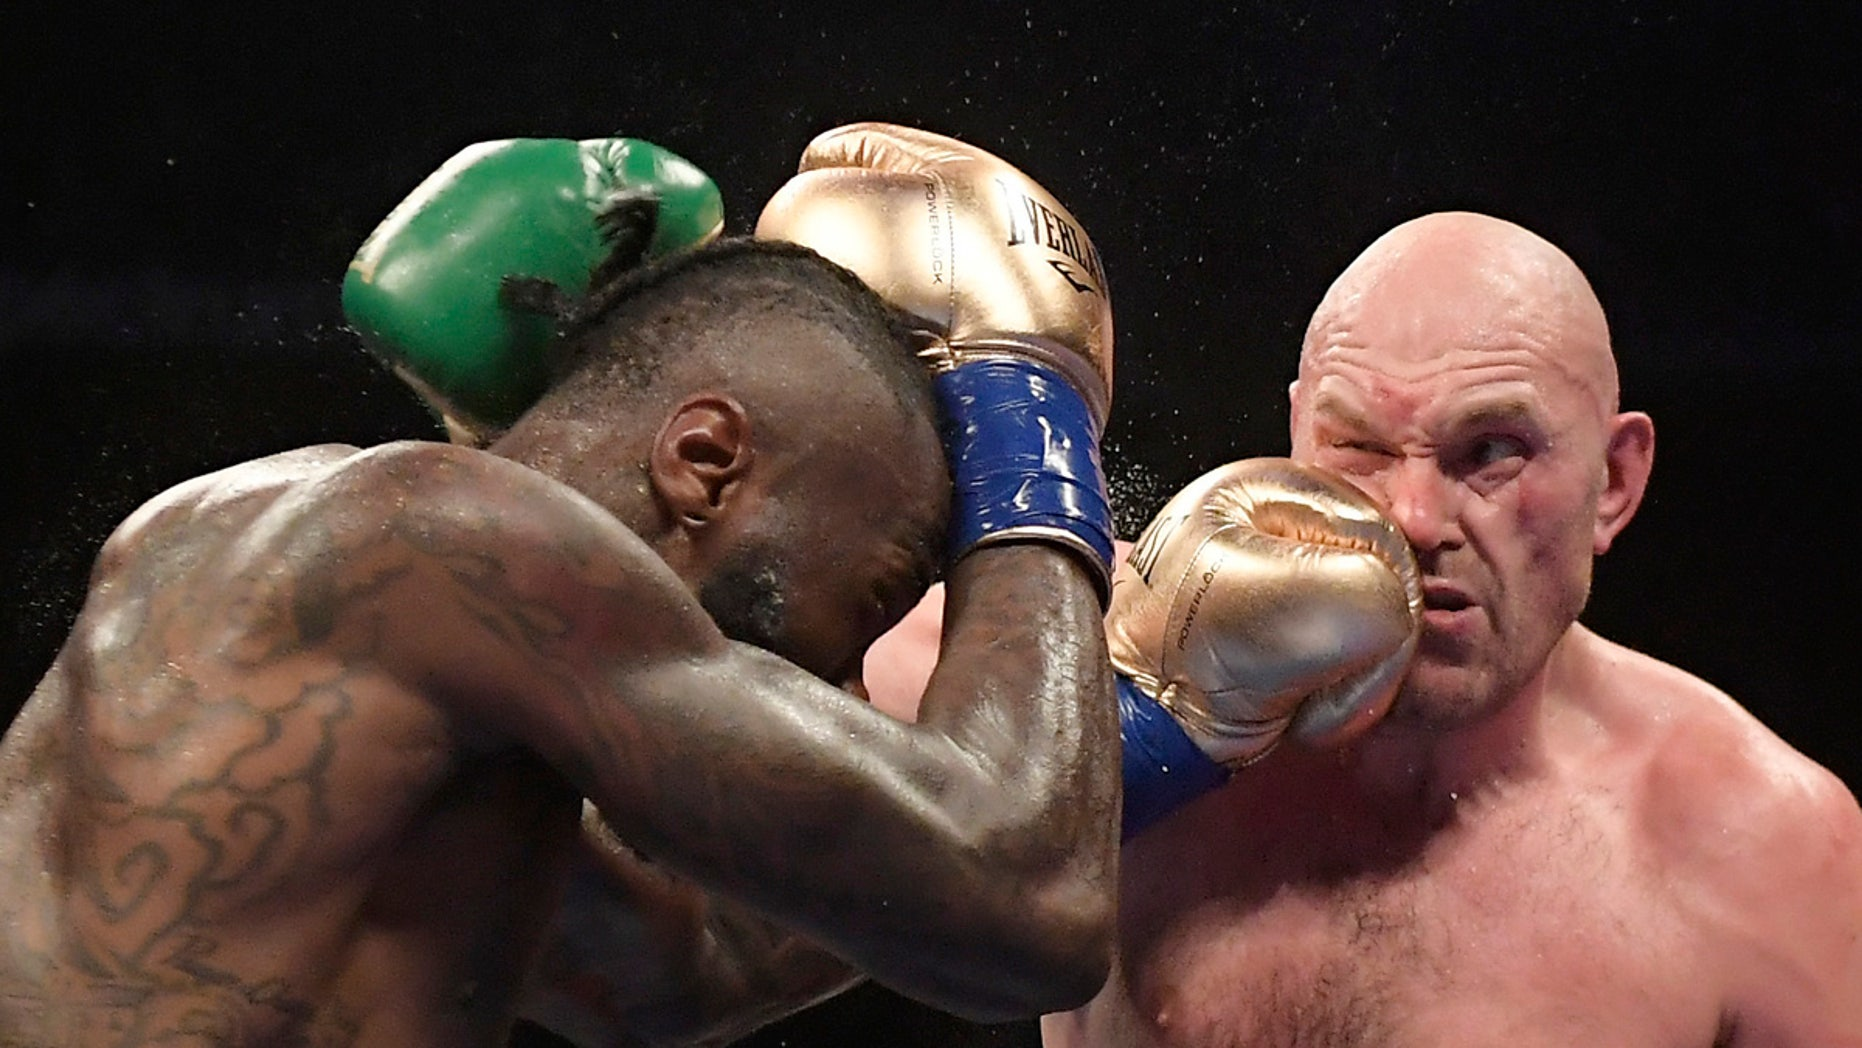 Some People Think Deontay Wilder Knocked Tyson Fury Down Illegally